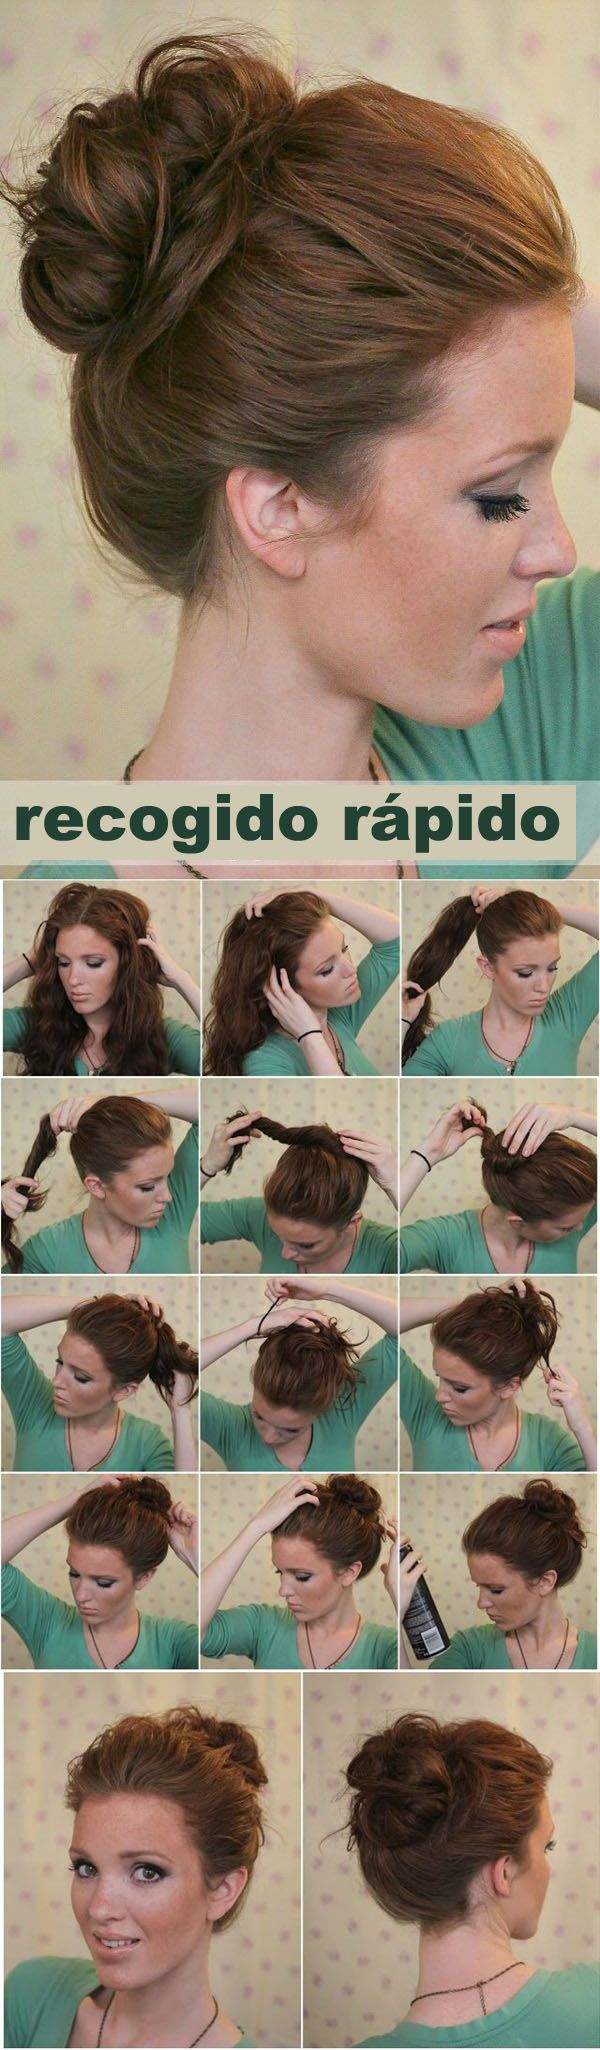 + 25 easy hairstyles 2018-2019 step by step 4